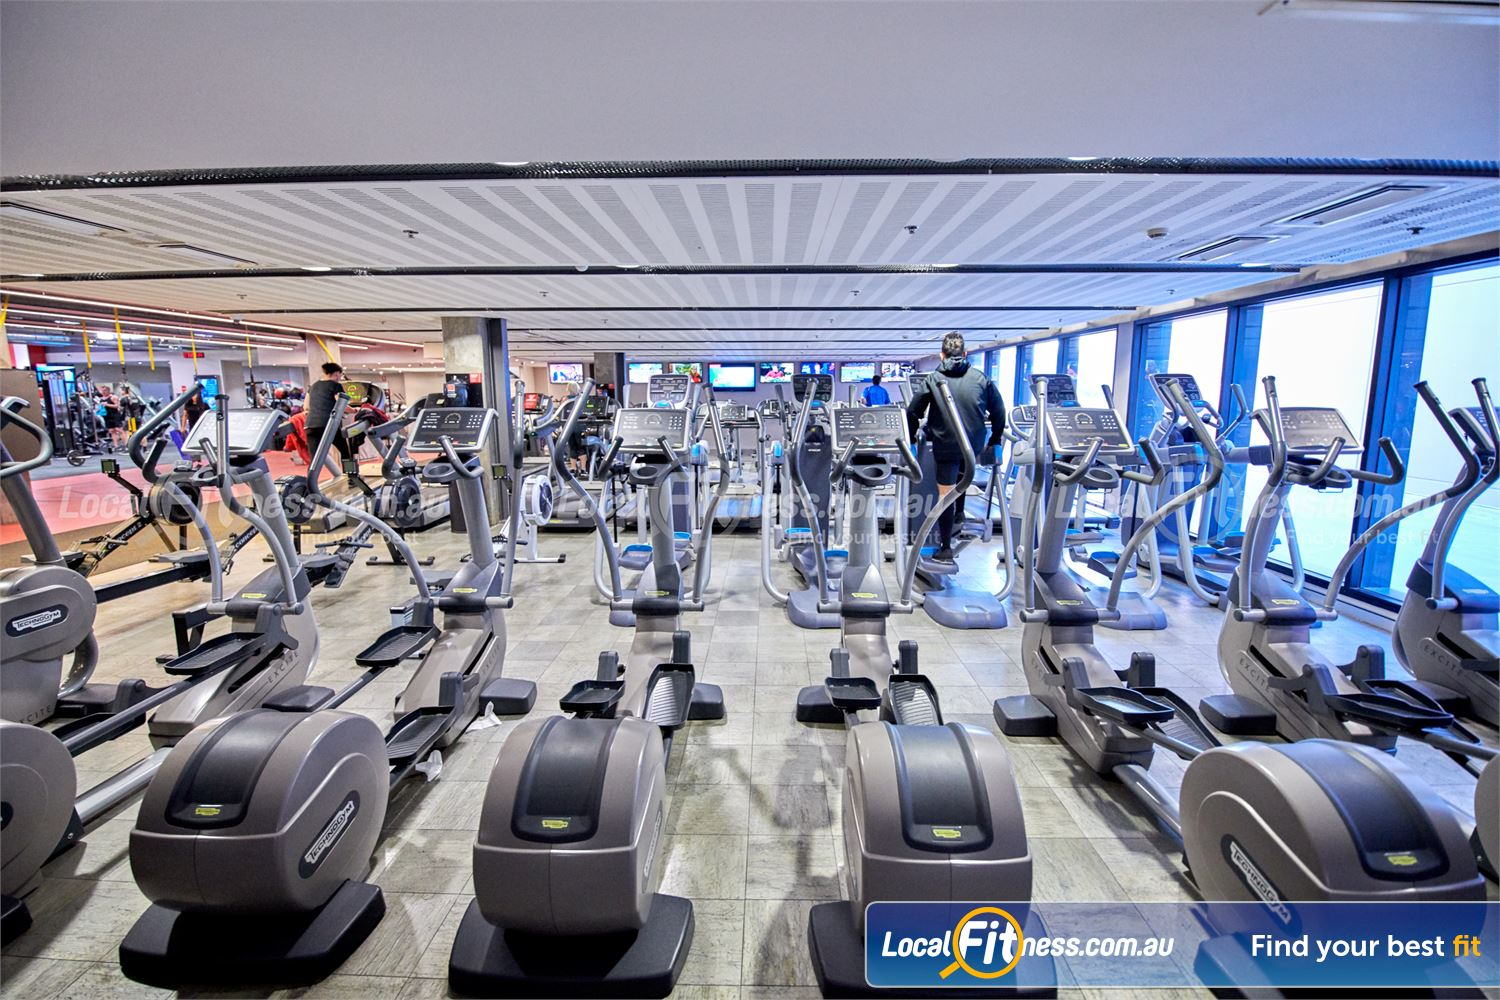 Fitness First Victoria Gardens Richmond Our Richmond gym is fully equipped with cardio.